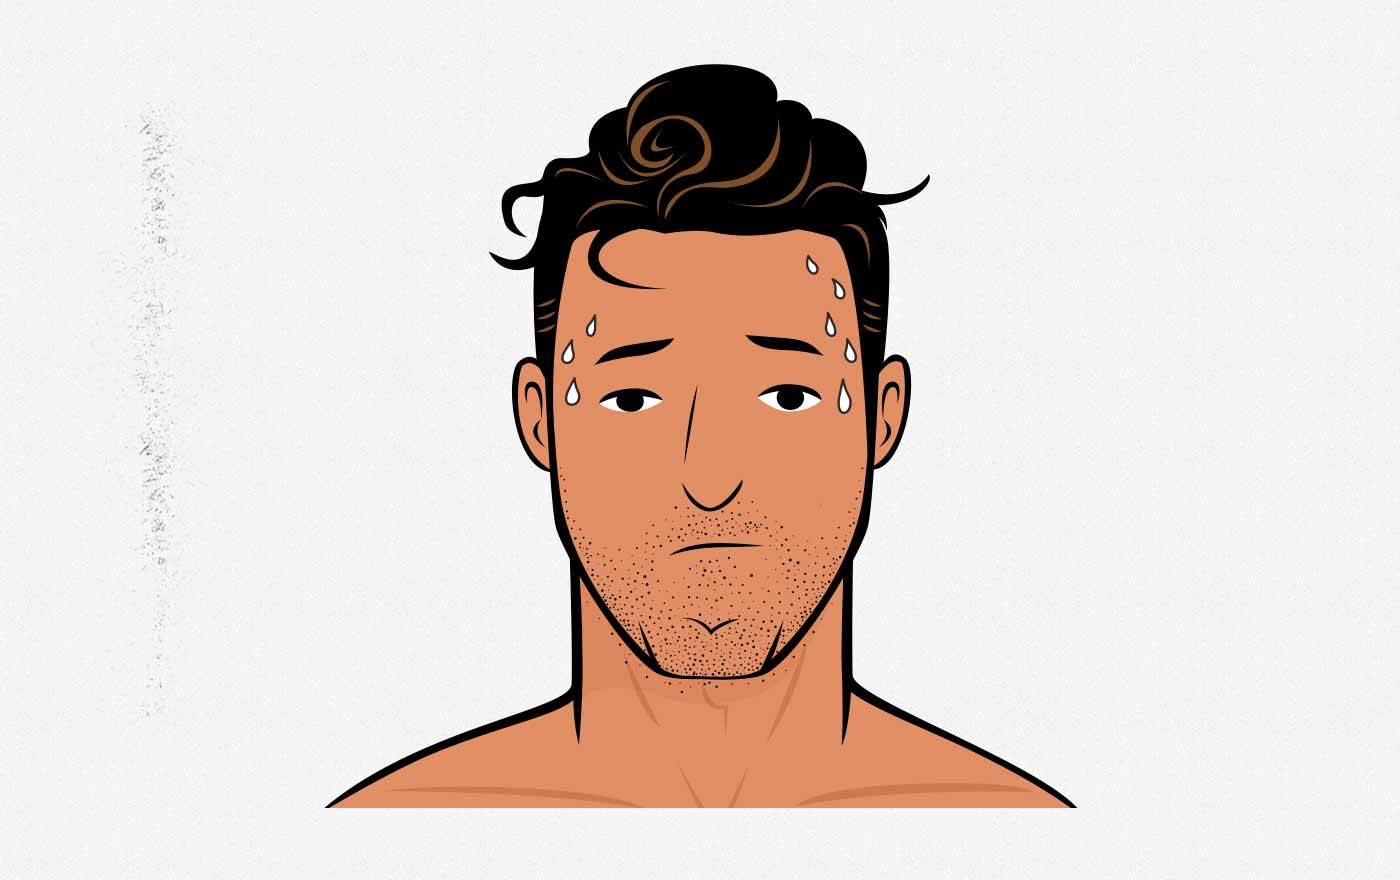 Illustration of a sweaty, tired man with disheveled hair.